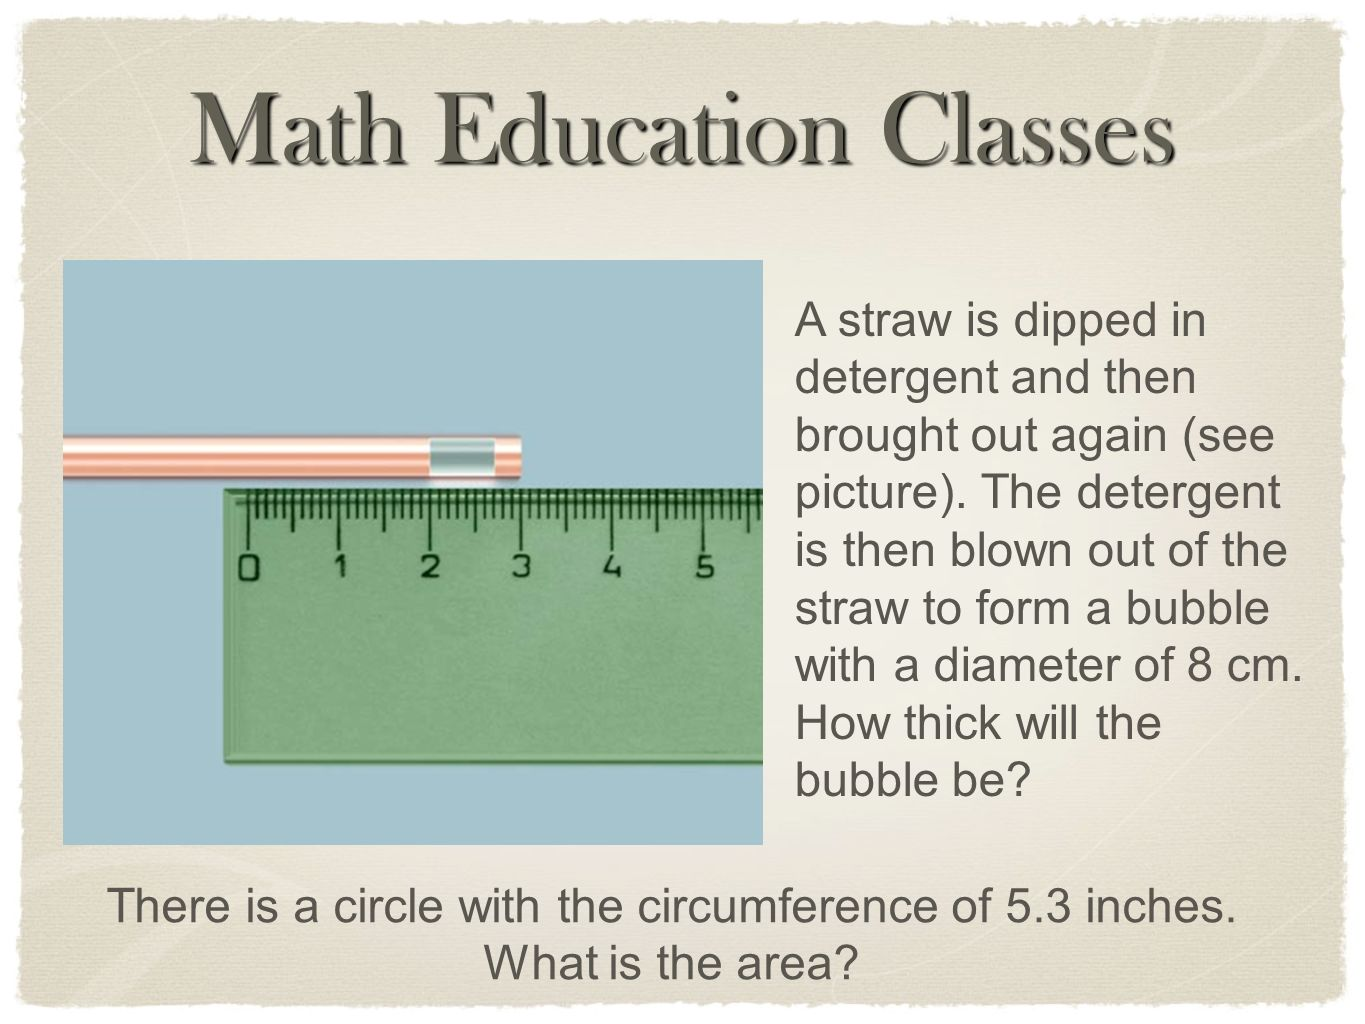 Math Education Classes A straw is dipped in detergent and then brought out again (see picture). The detergent is then blown out of the straw to form a